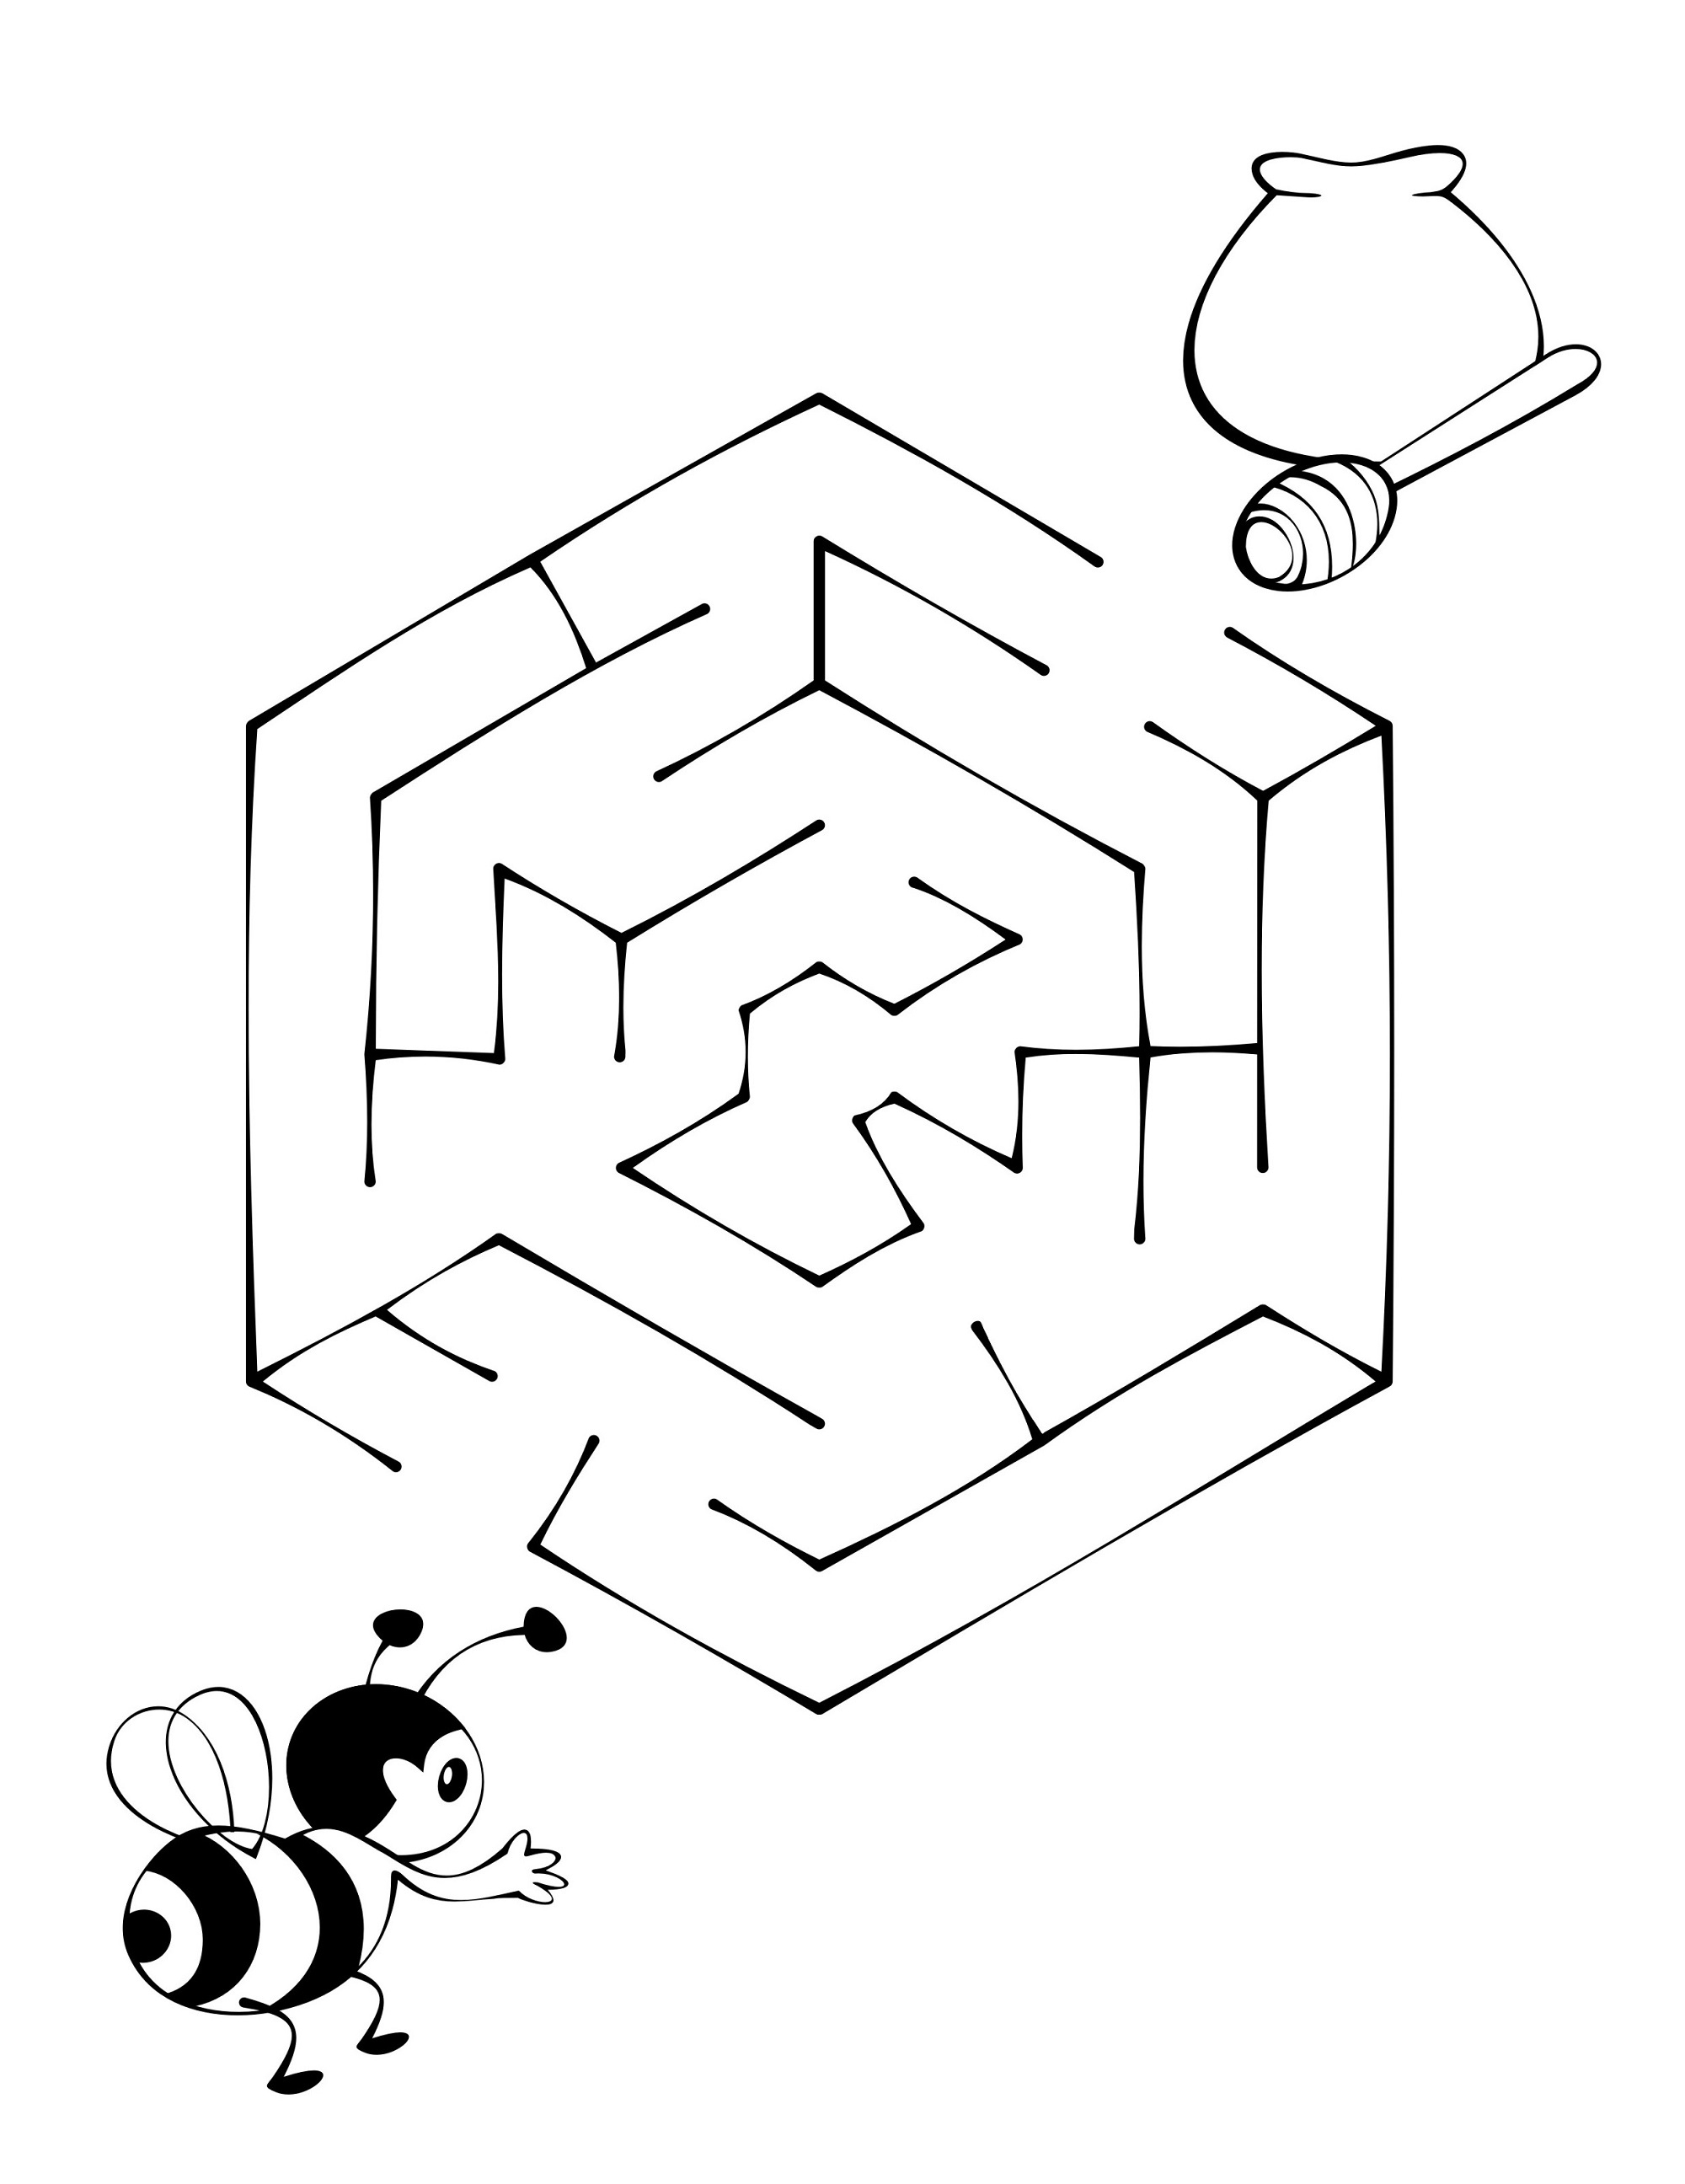 Maze Puzzle For Kids To Print | Kiddo Shelter - Printable Labyrinth Puzzles